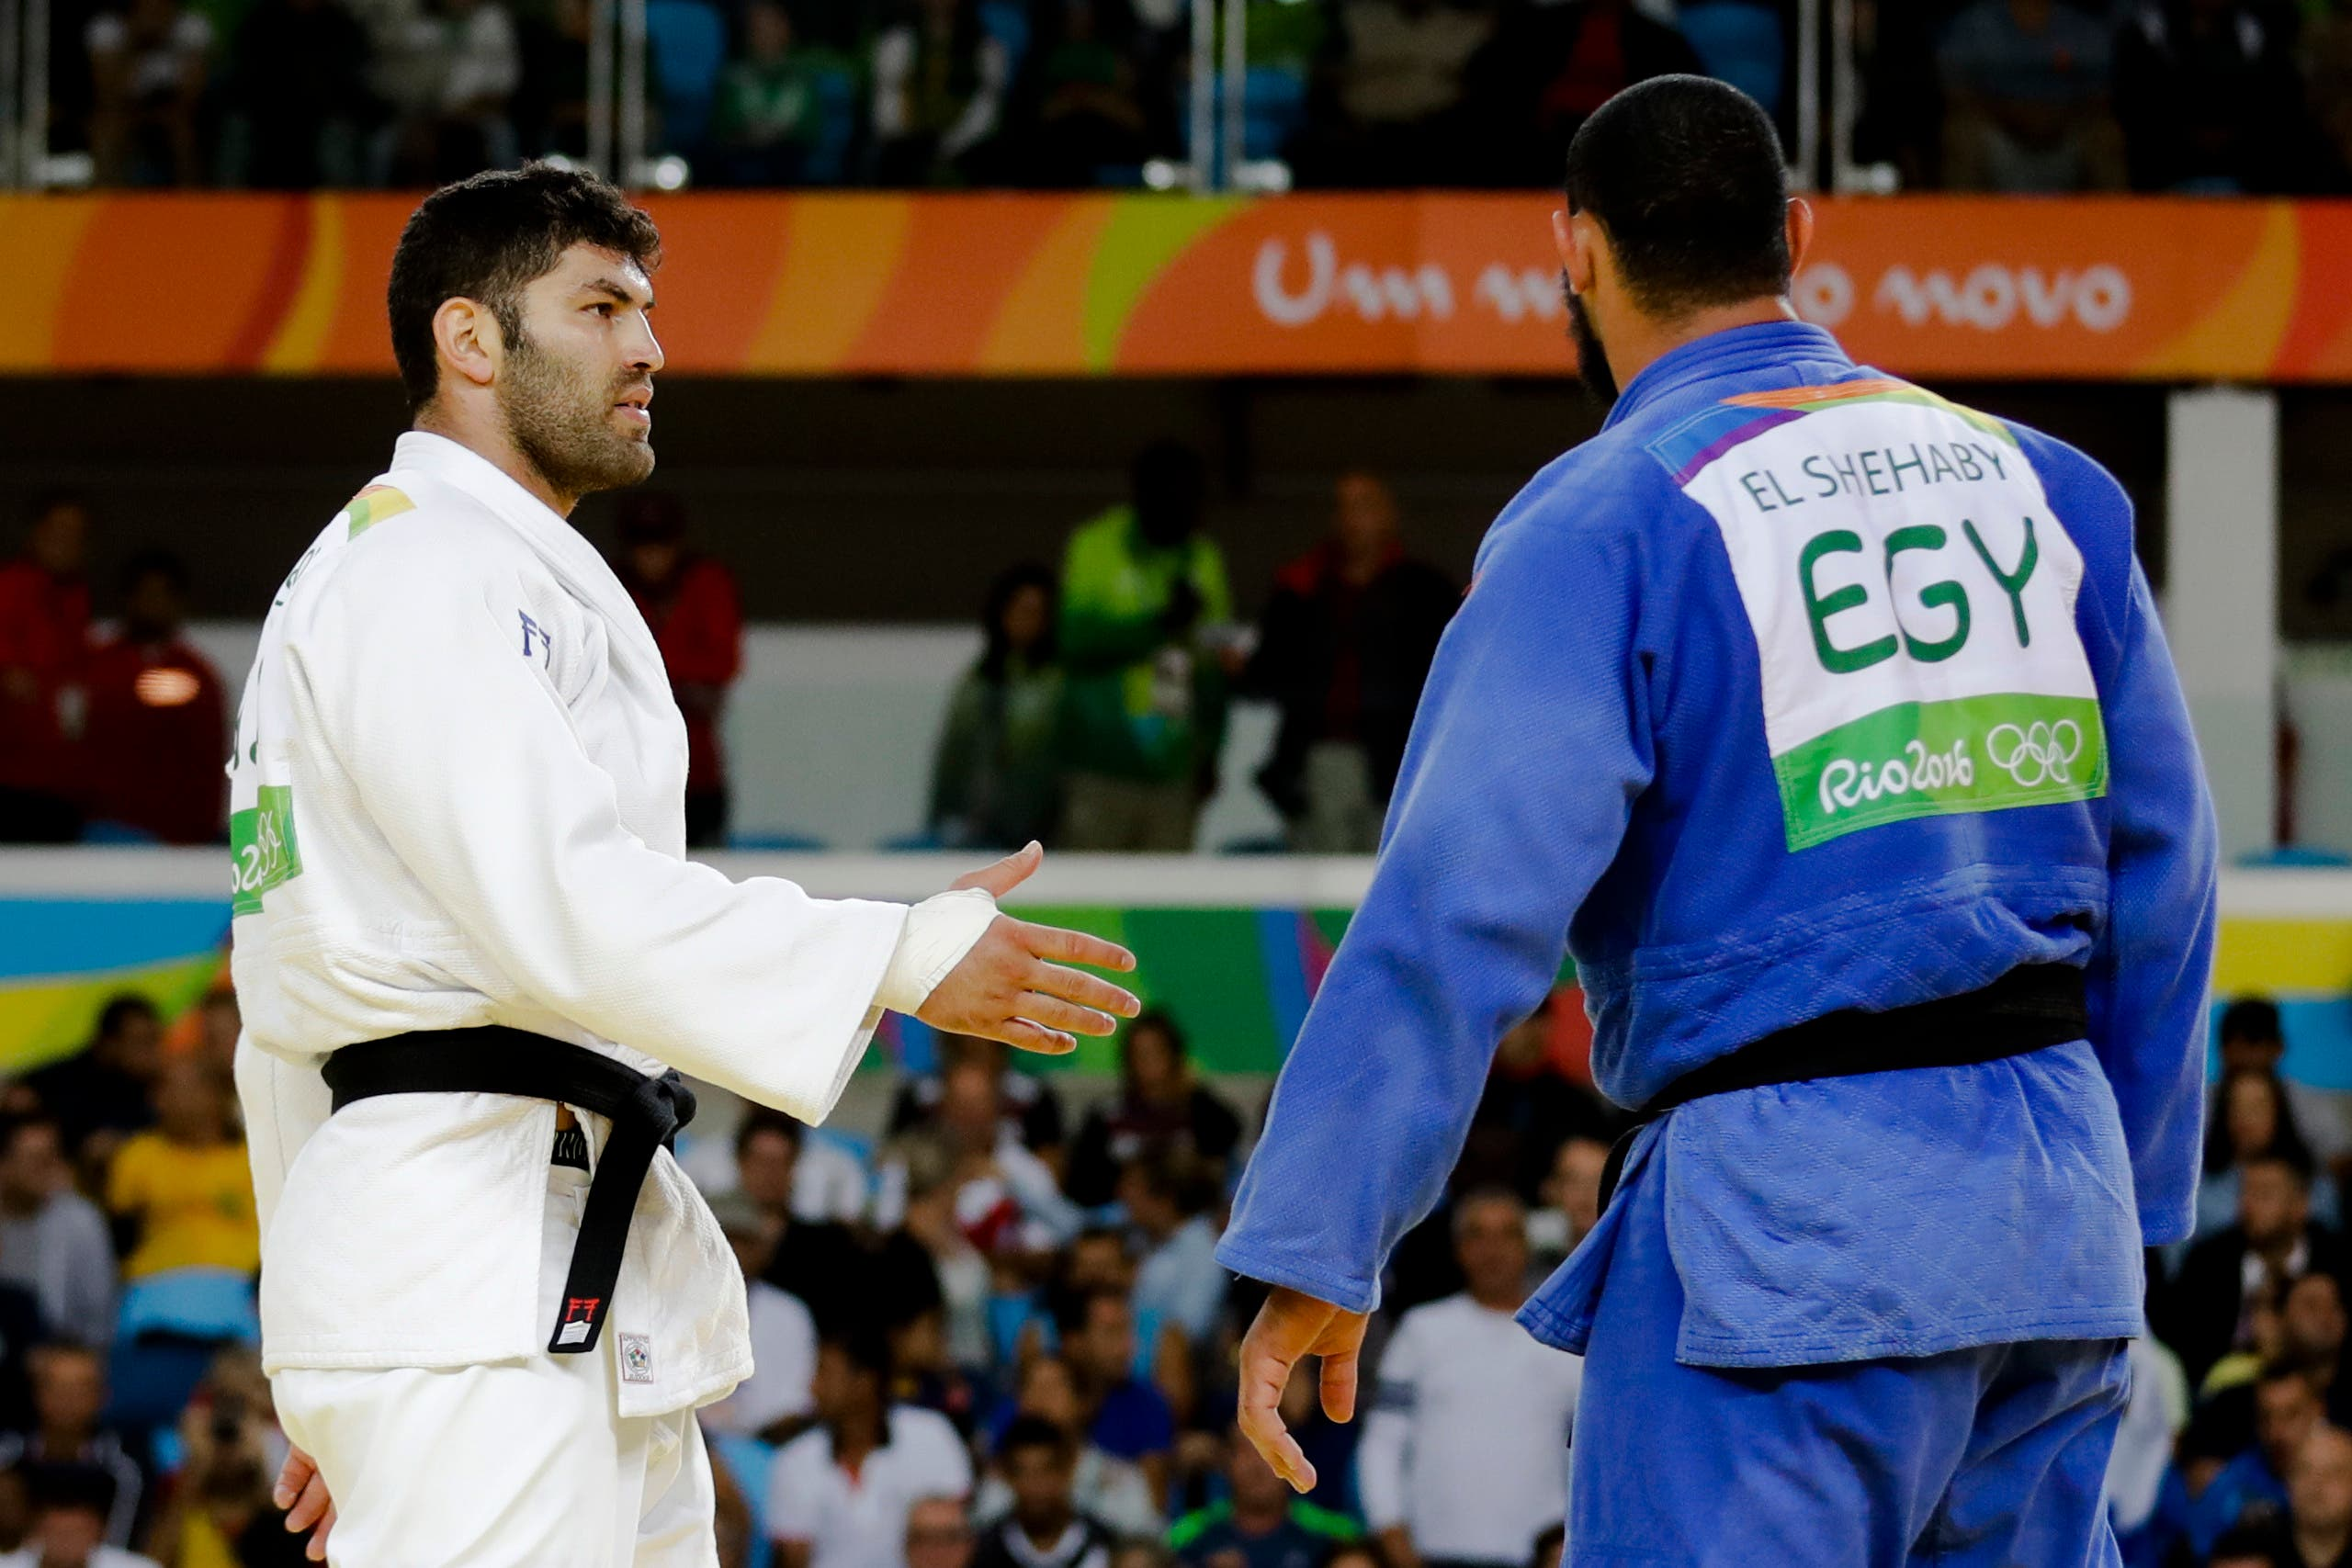 Egypt's Islam El Shehaby, blue, declines to shake hands with Israel's Or Sasson, white, after losing during the men's over 100-kg judo competition at the 2016 Summer Olympics in Rio de Janeiro, Brazil, Friday, Aug. 12, 2016. (AP)